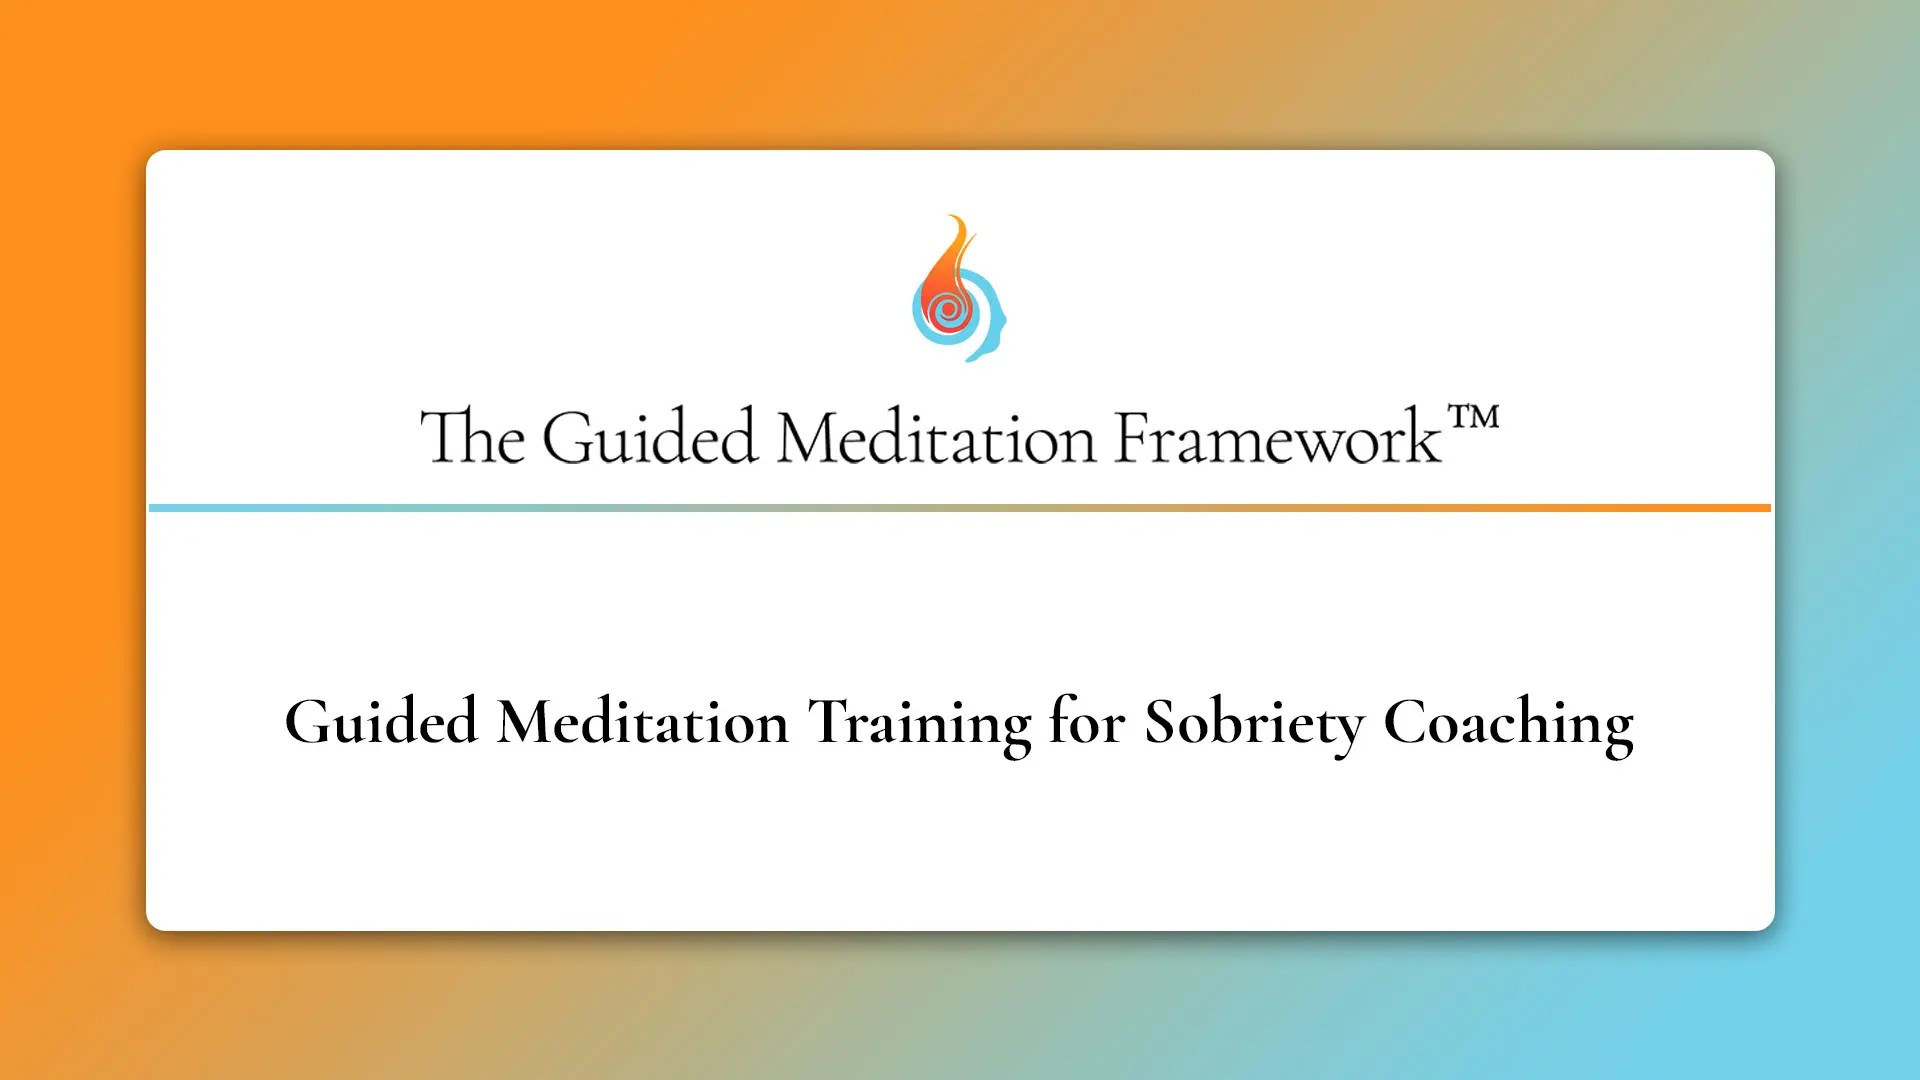 The Guided Meditation Framework for sobriety coaching